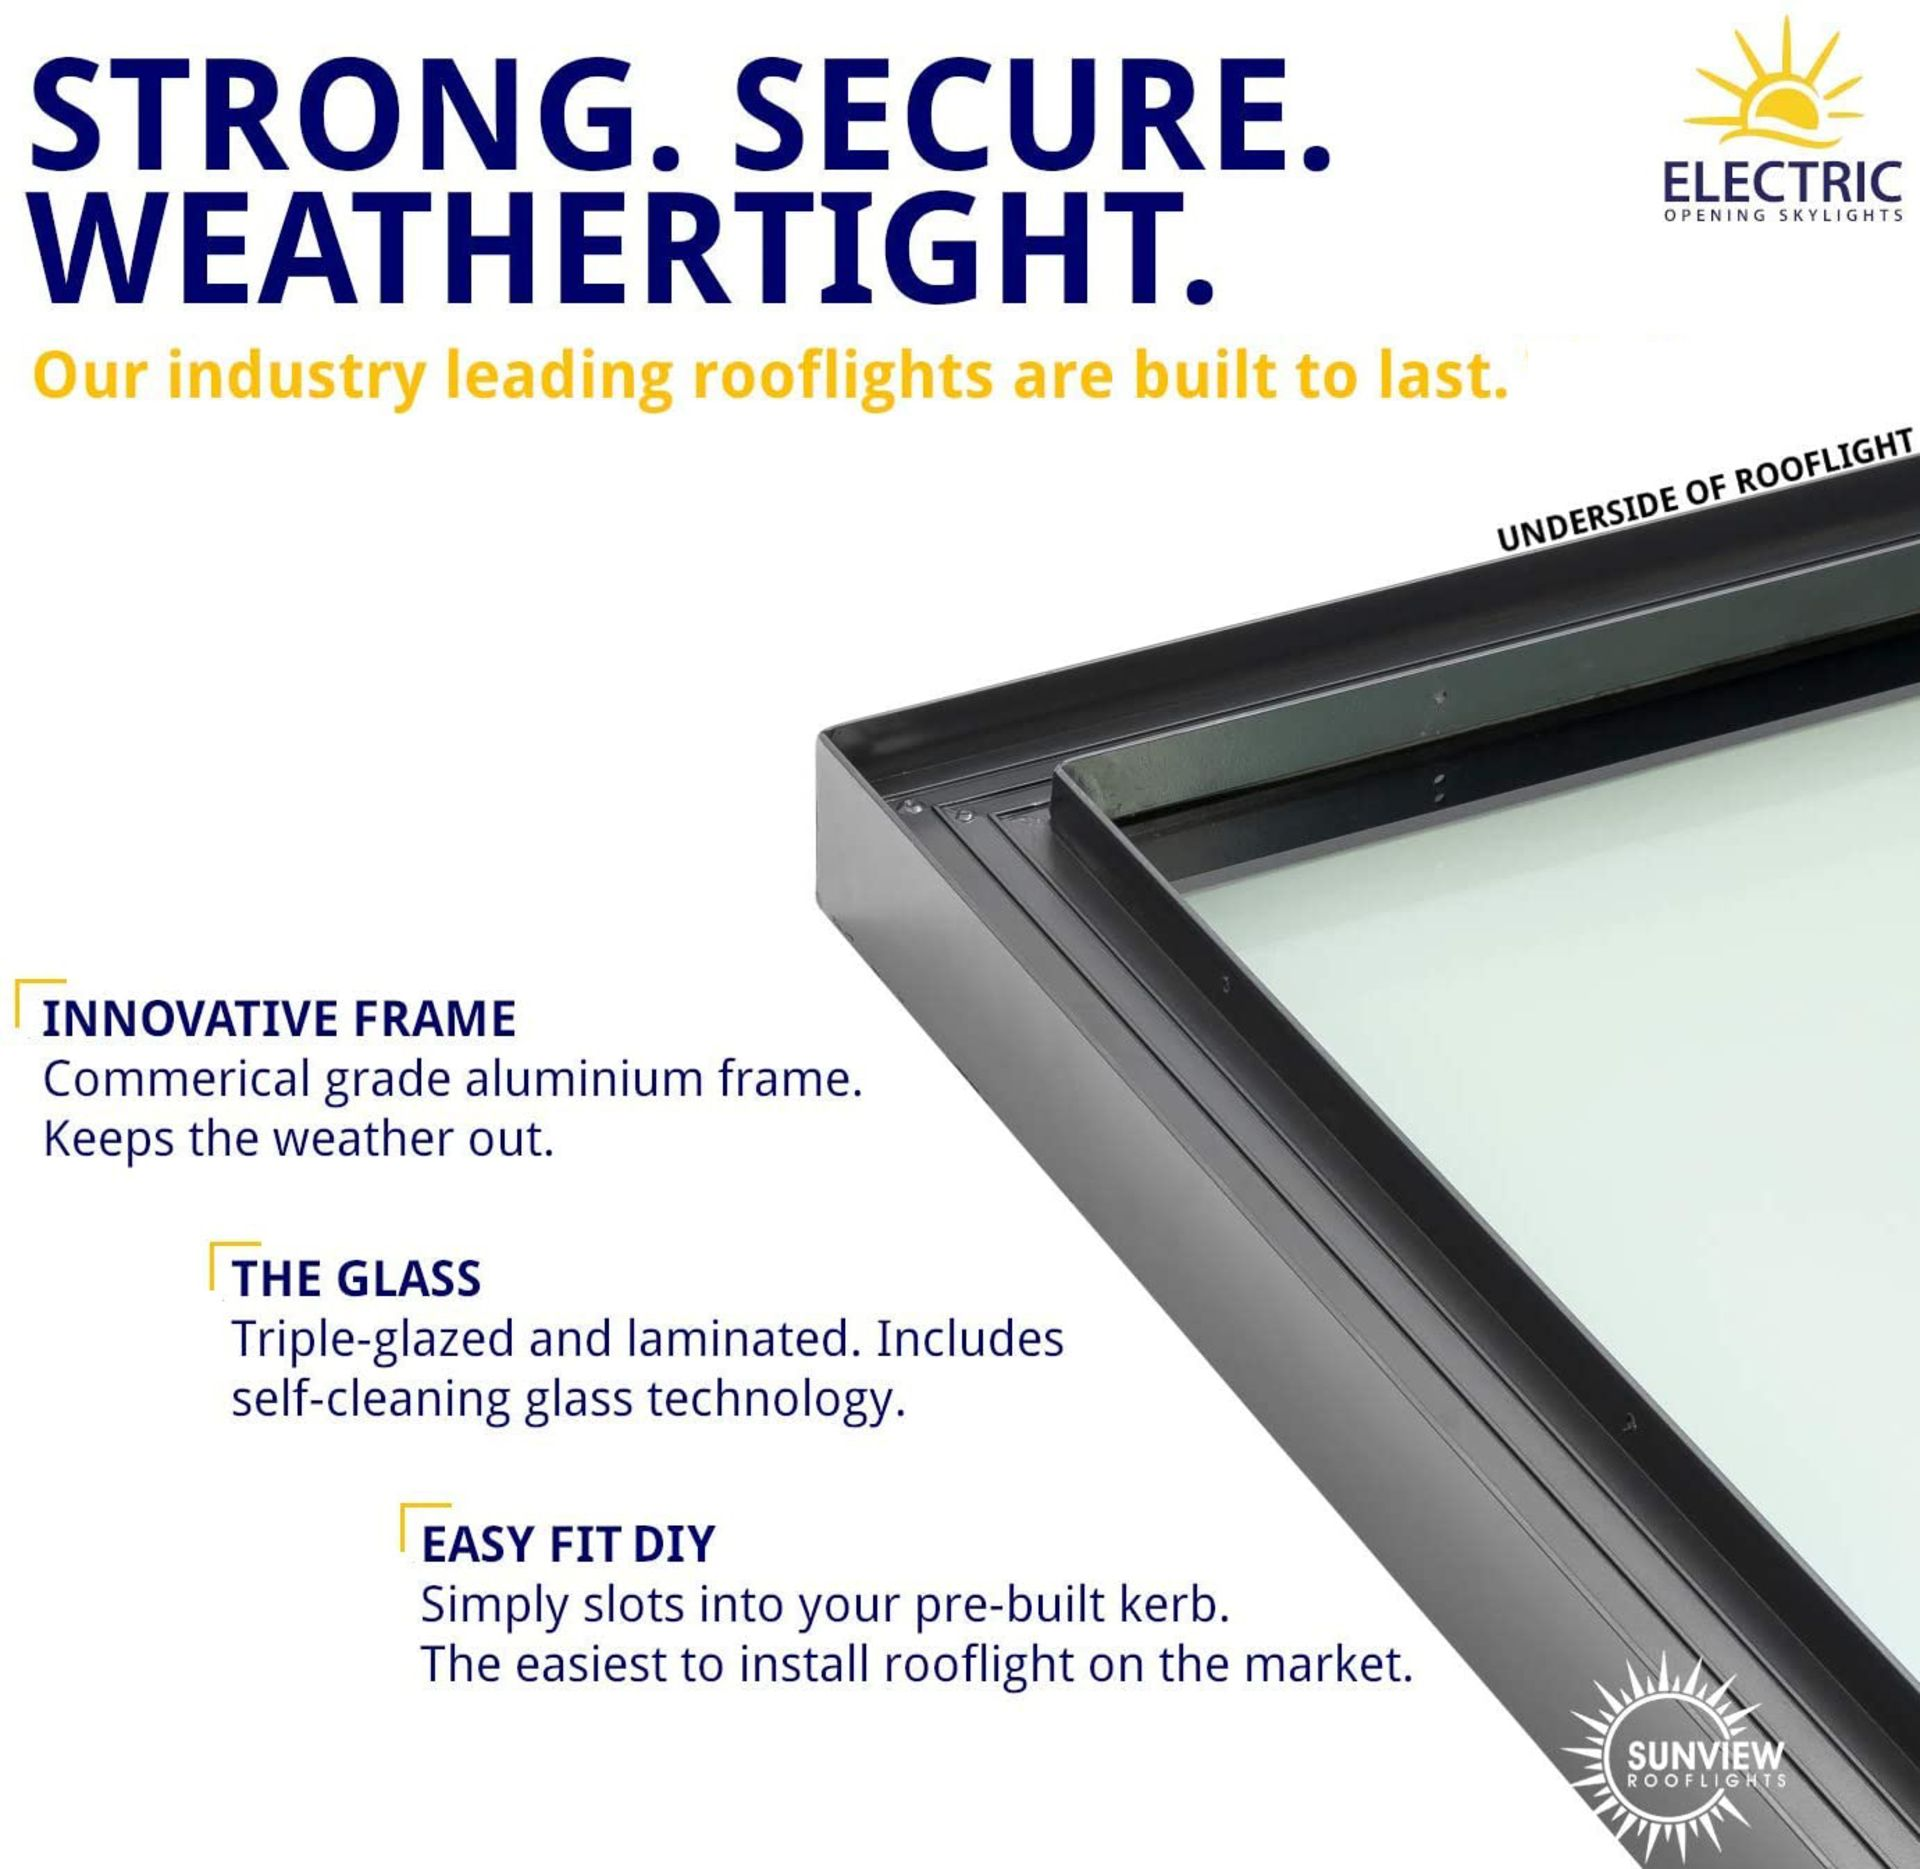 Panoroof (EOS) Fixed Aluminium Triple-Glazed Laminated Skylight with Self-Cleaning Glass - 800x800mm - Image 2 of 6